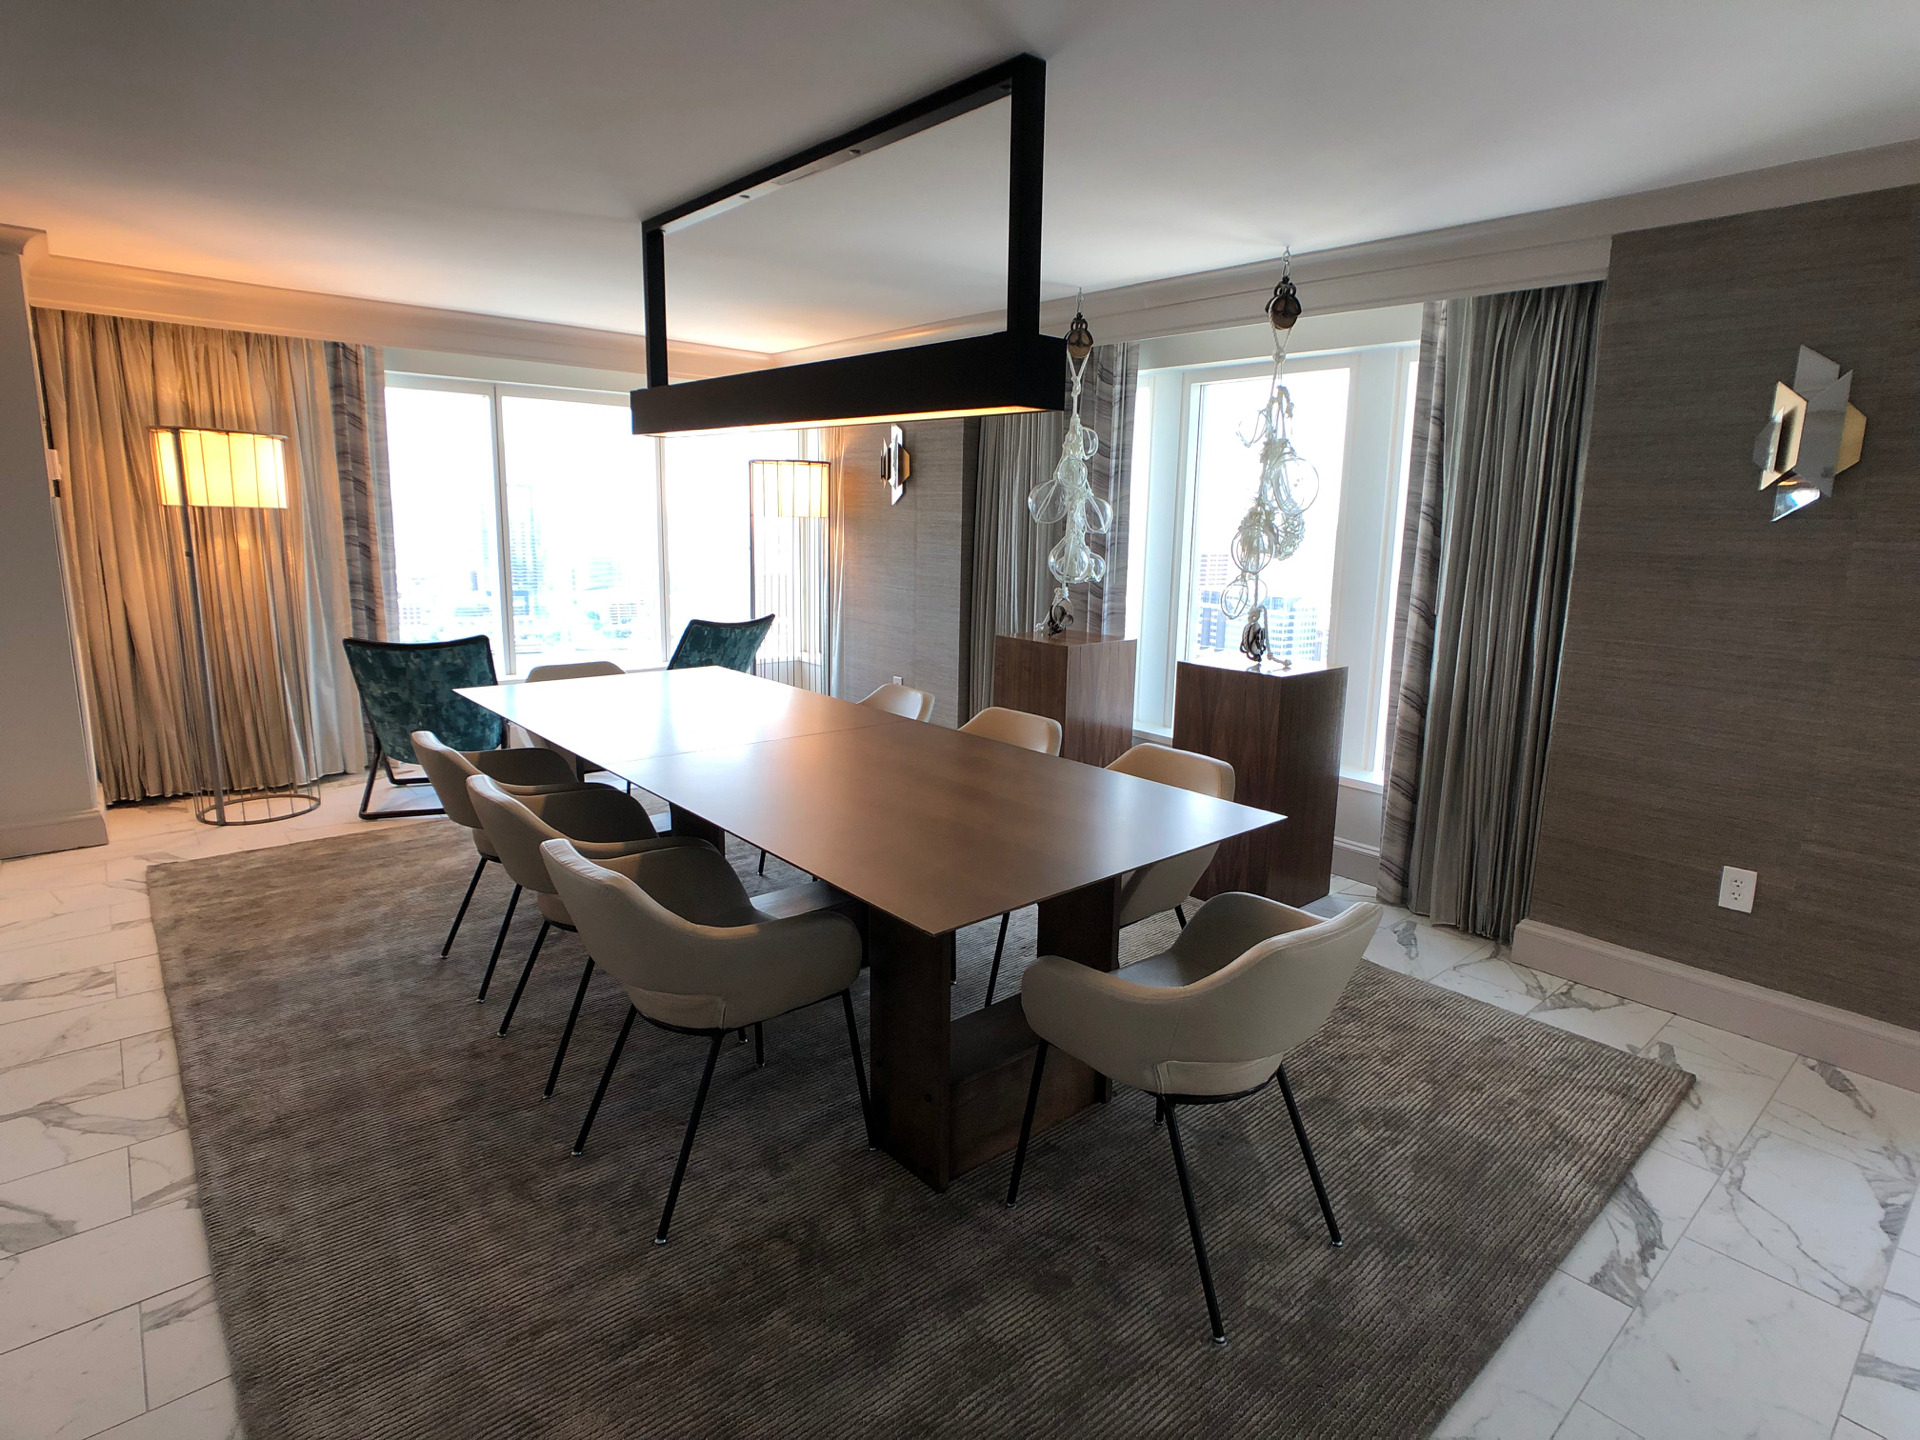 Baltimore Marriott Waterfront renovated dining space